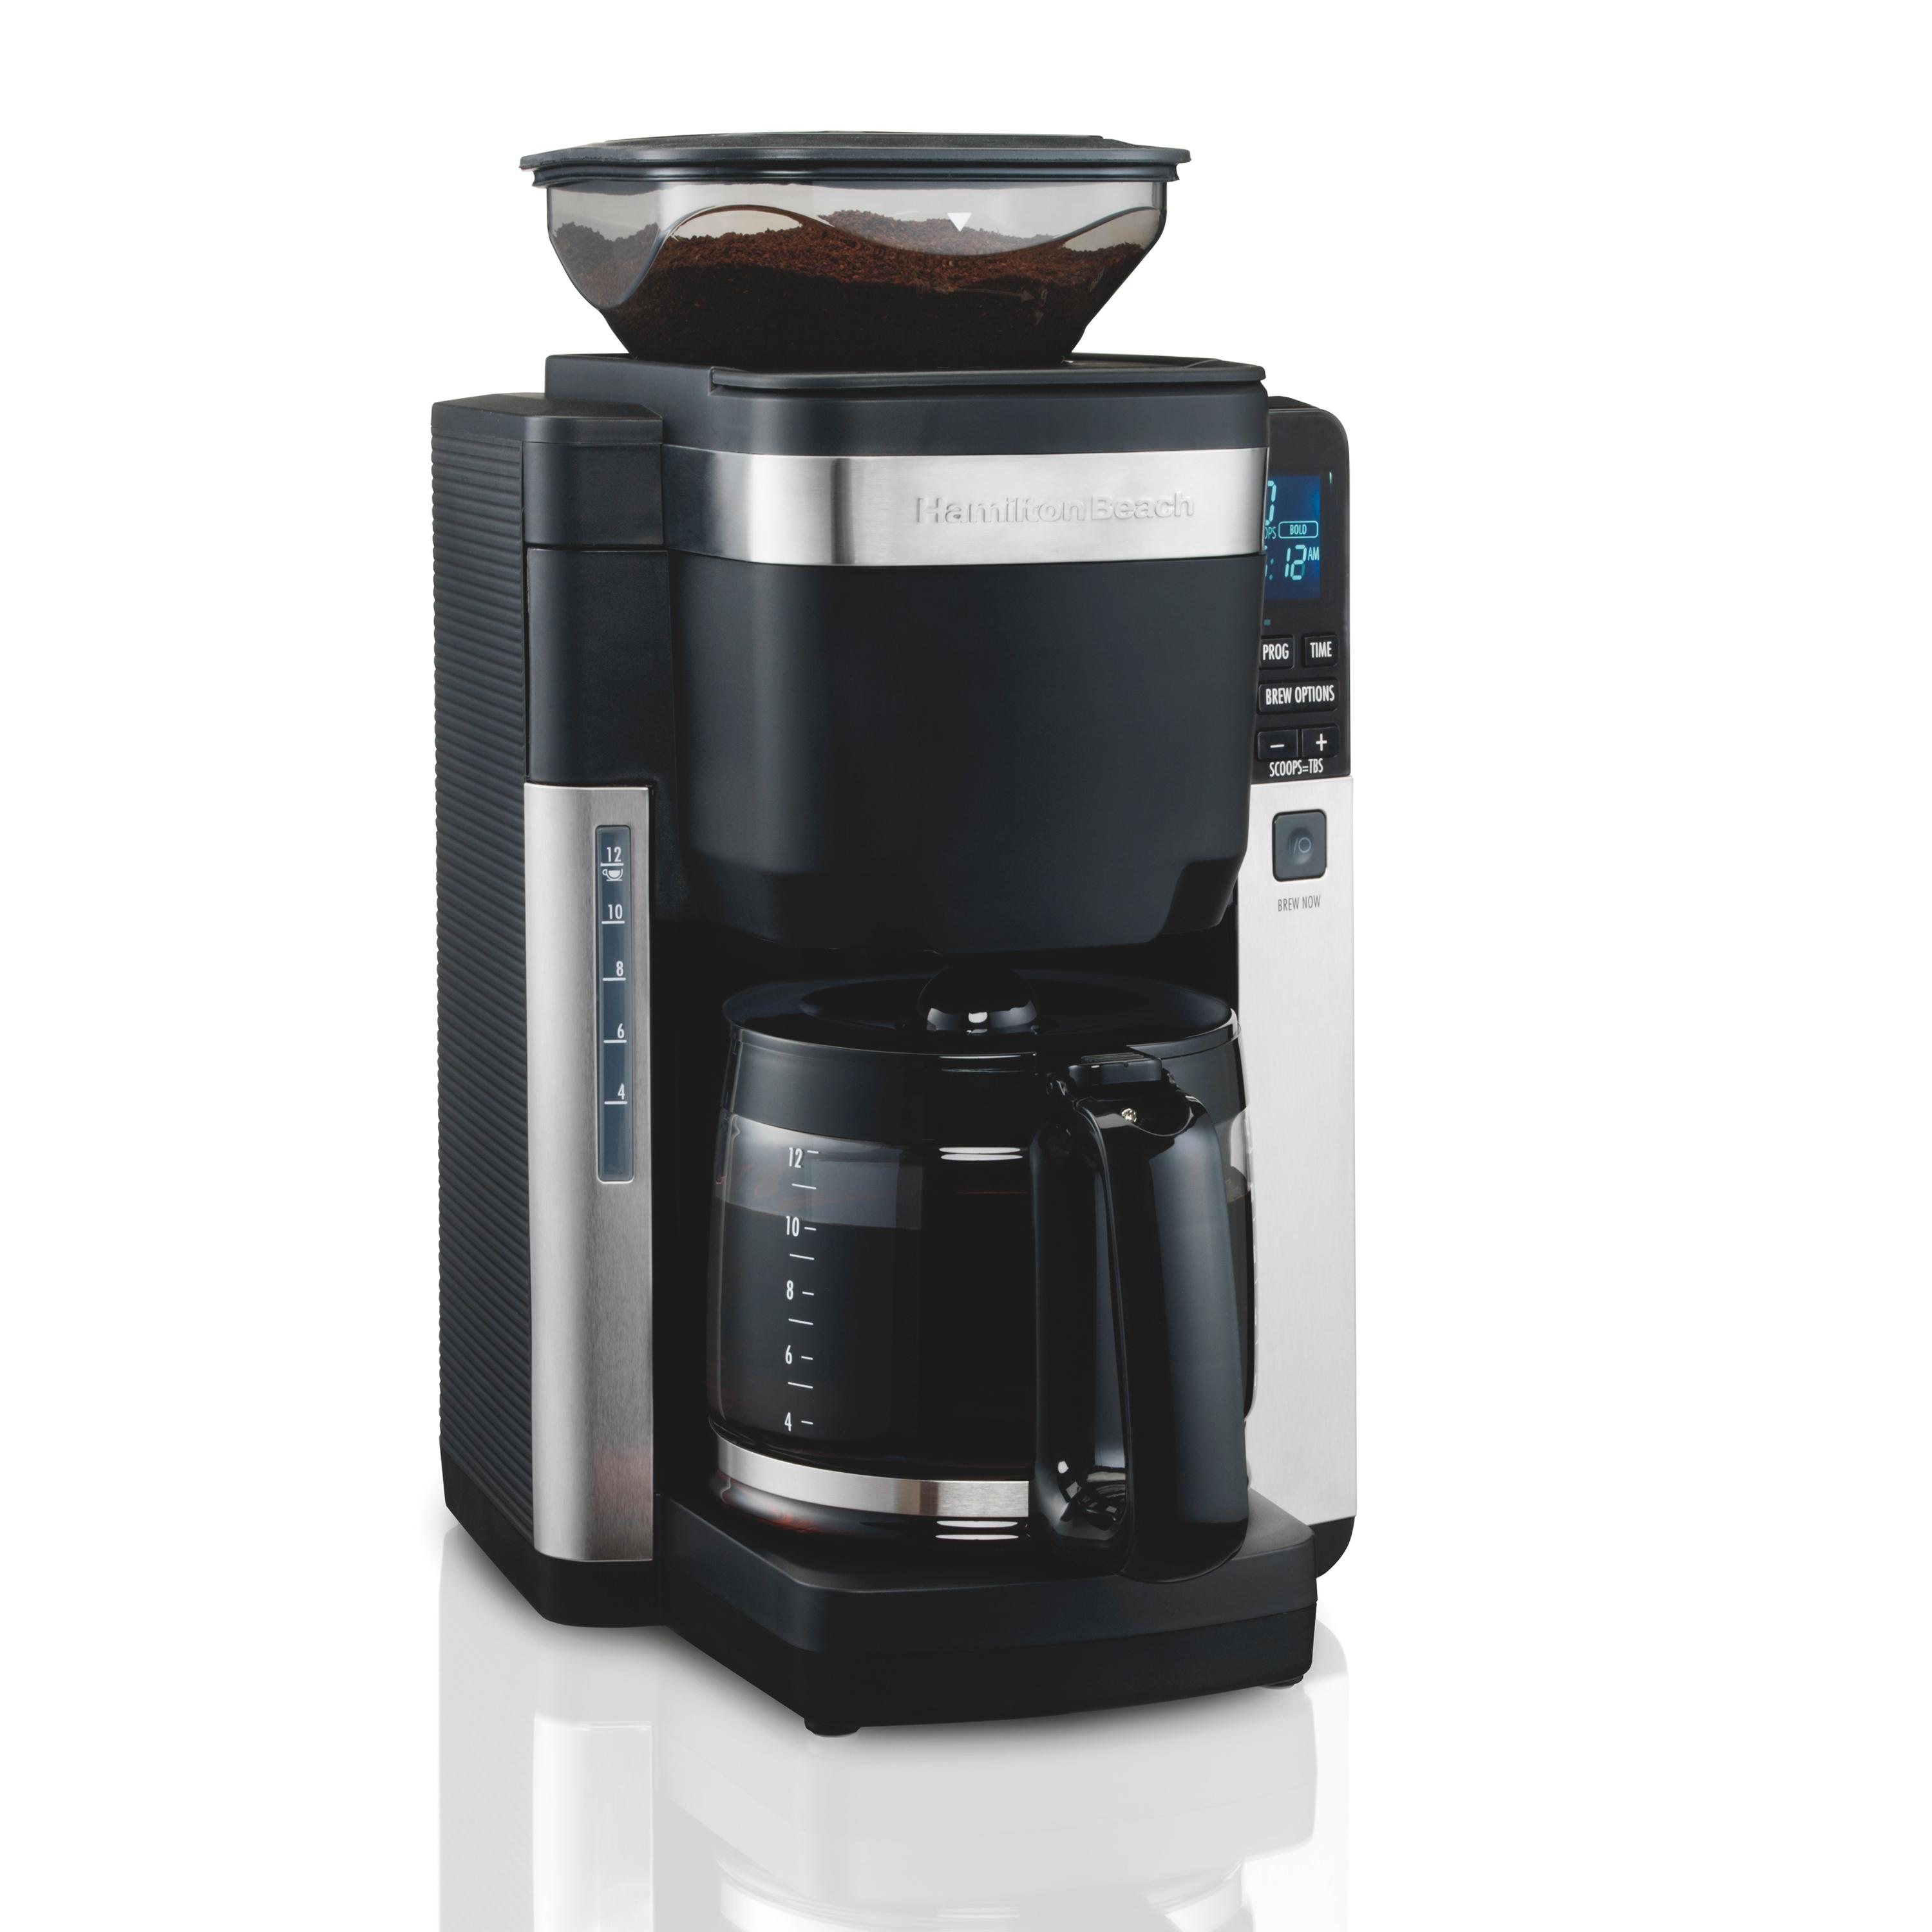 d1c55bc4 7a0a 427e 8bbe 21597b7294d2 Cuisinart Coffee Maker With Built In Grinder